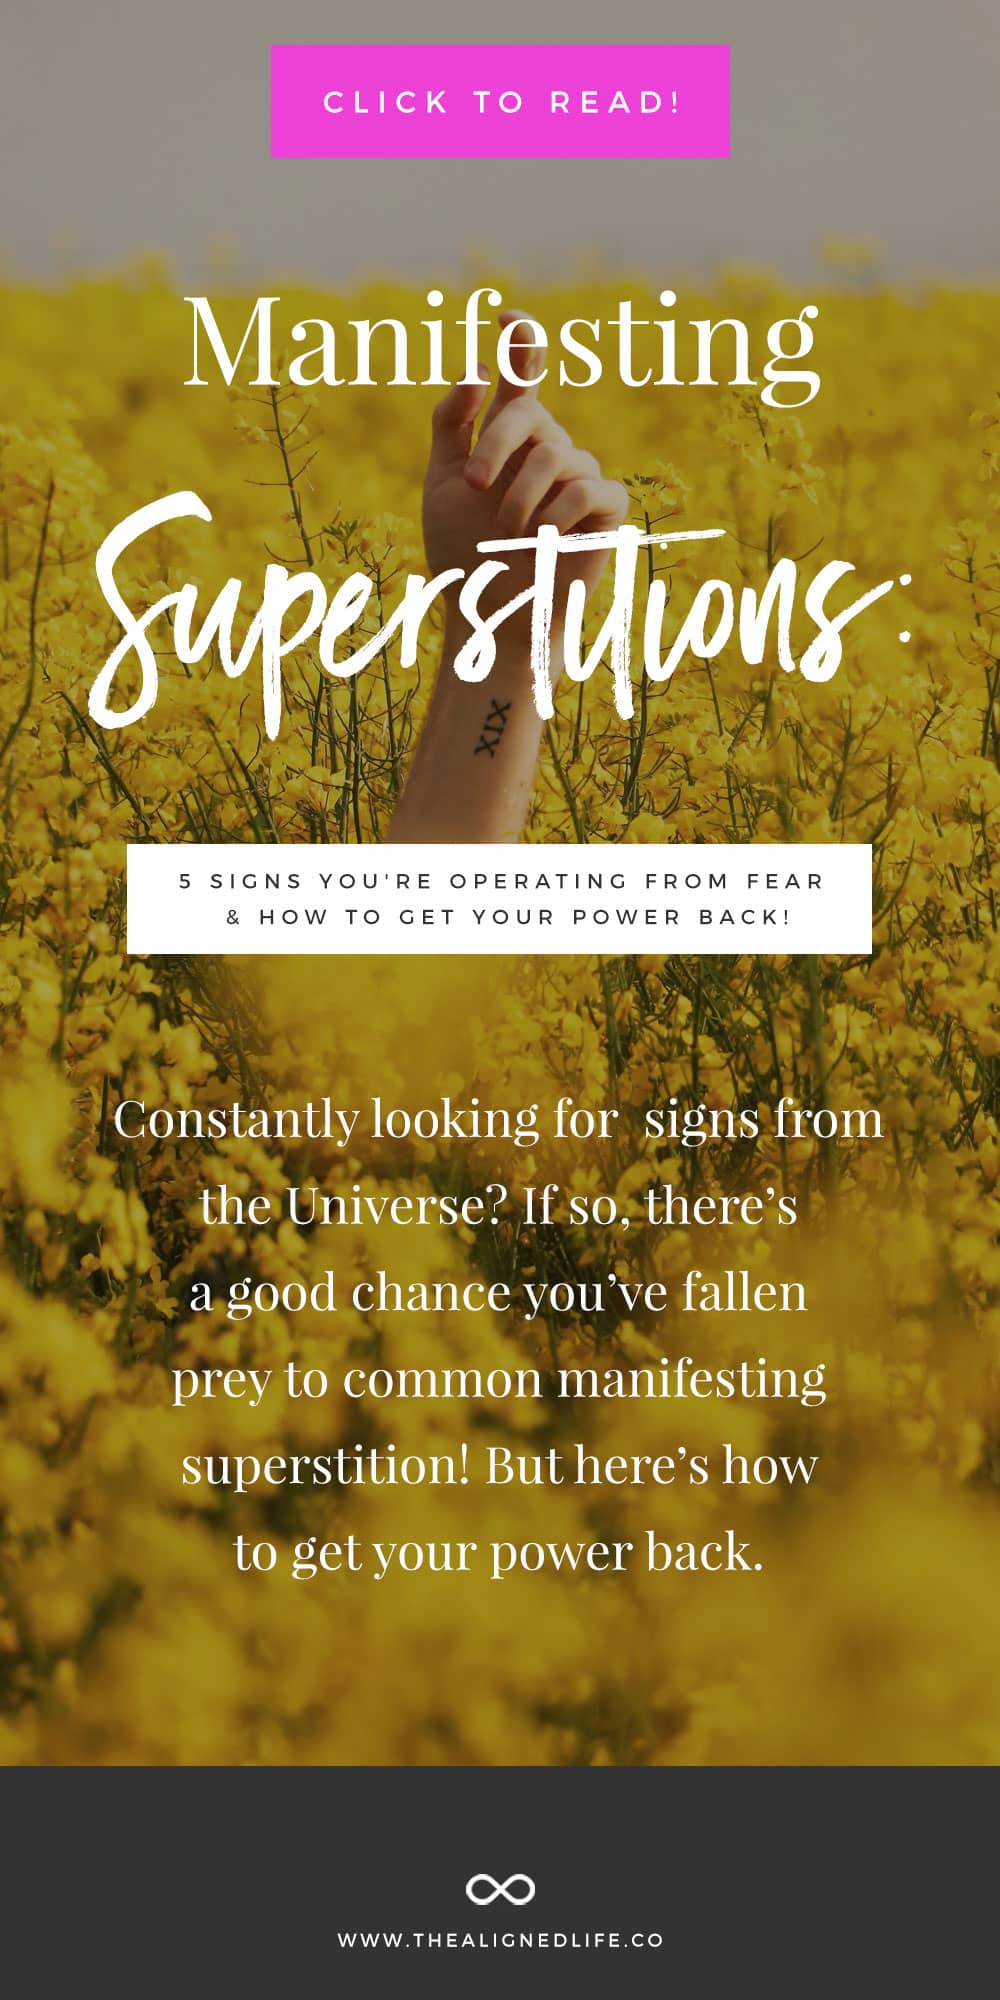 Manifesting Superstitions: 5 Signs You're Operating From Fear & How To Get Your Power Back!